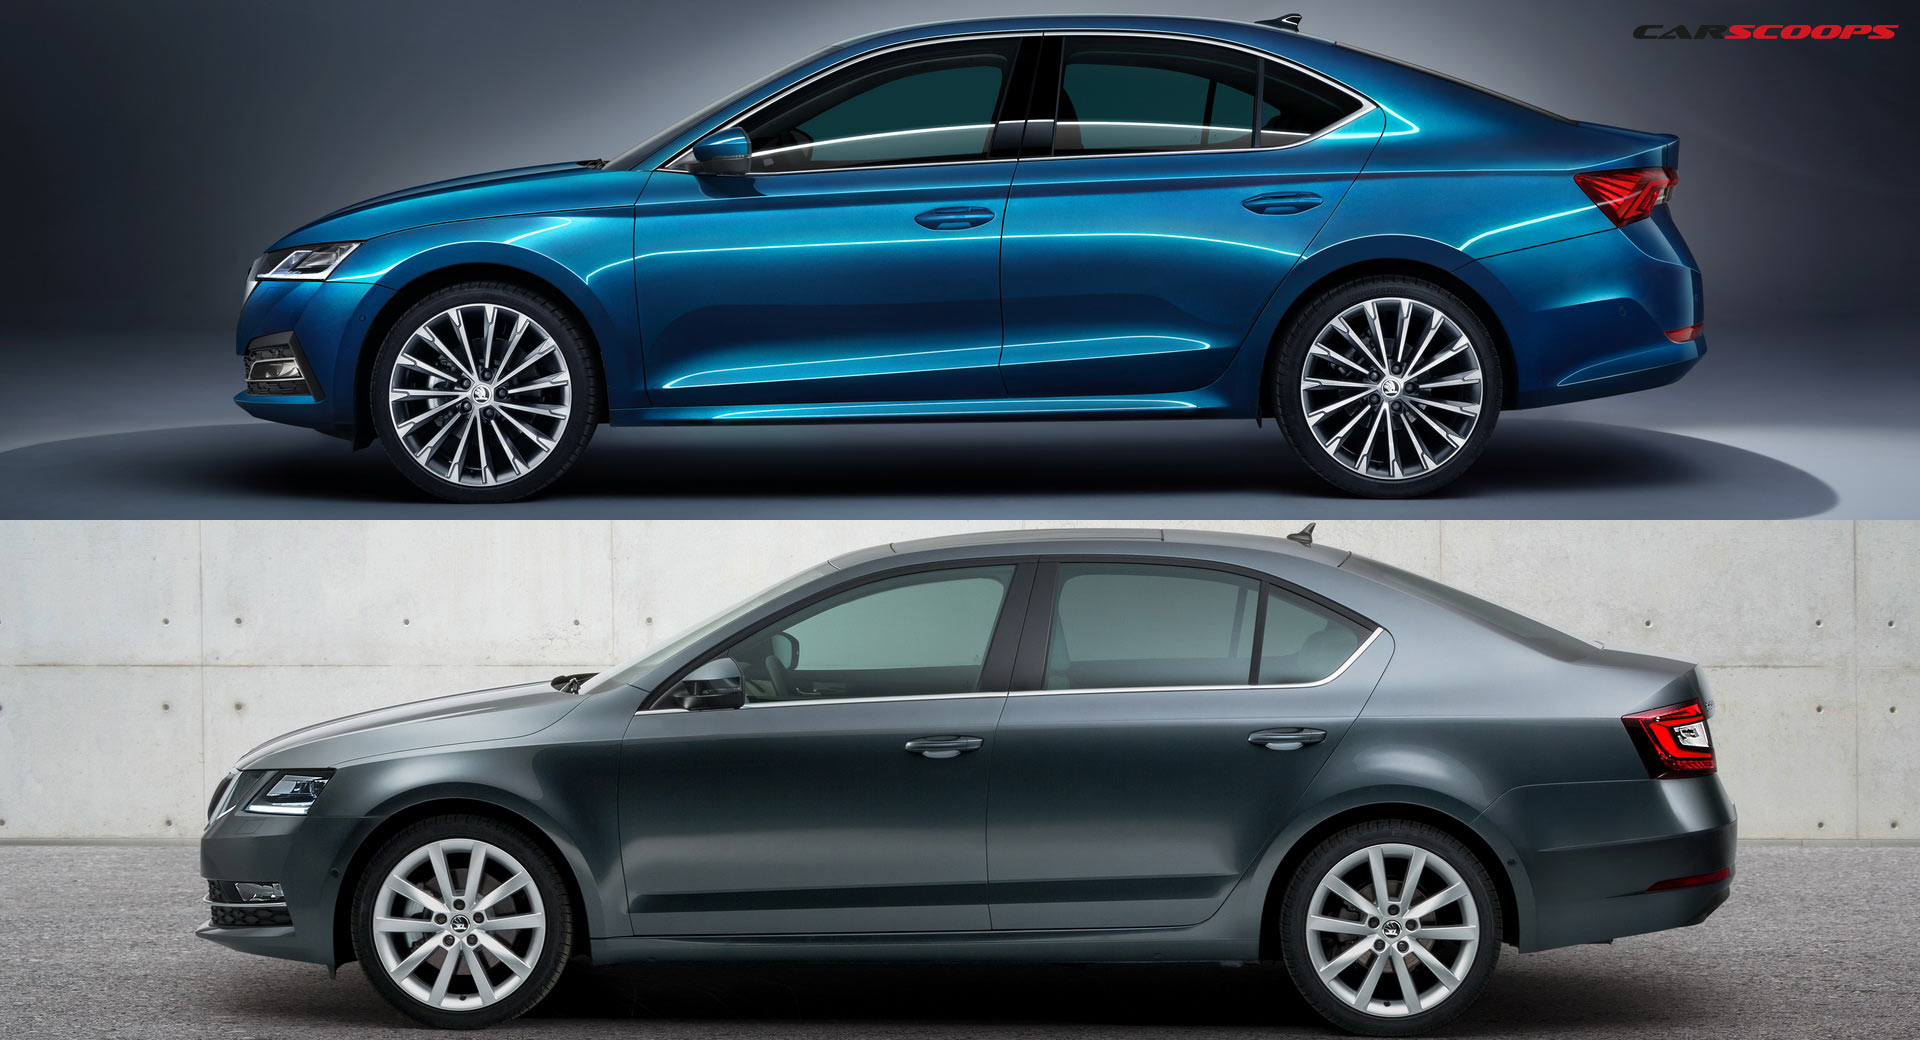 New 2020 Skoda Octavia Vs Predecessor What S Different